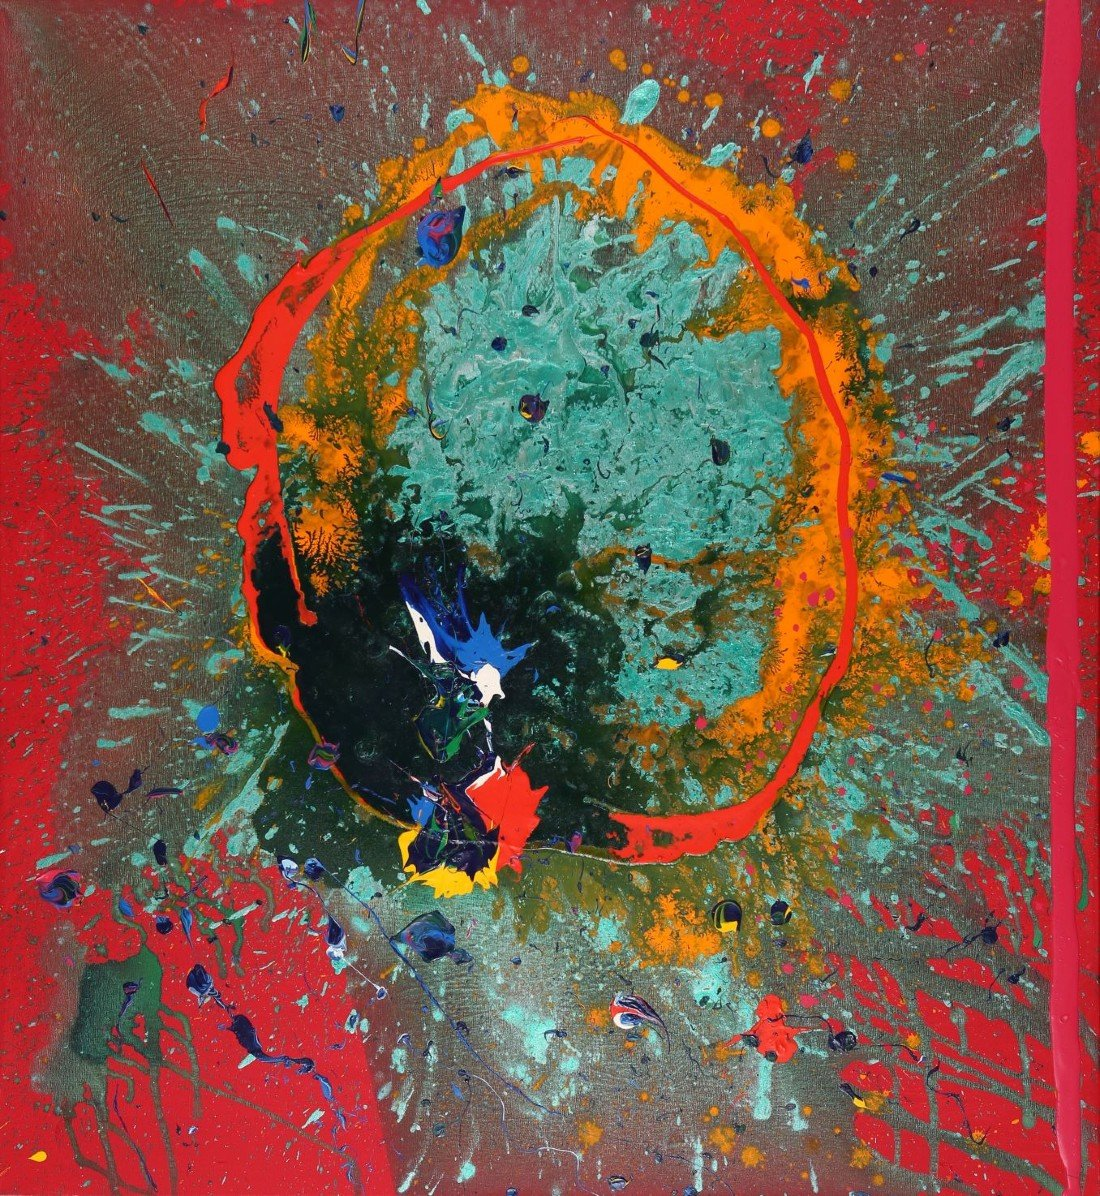 John Hoyland: The Last Paintings, 3 July | Event in Sheffield | AllEvents.in